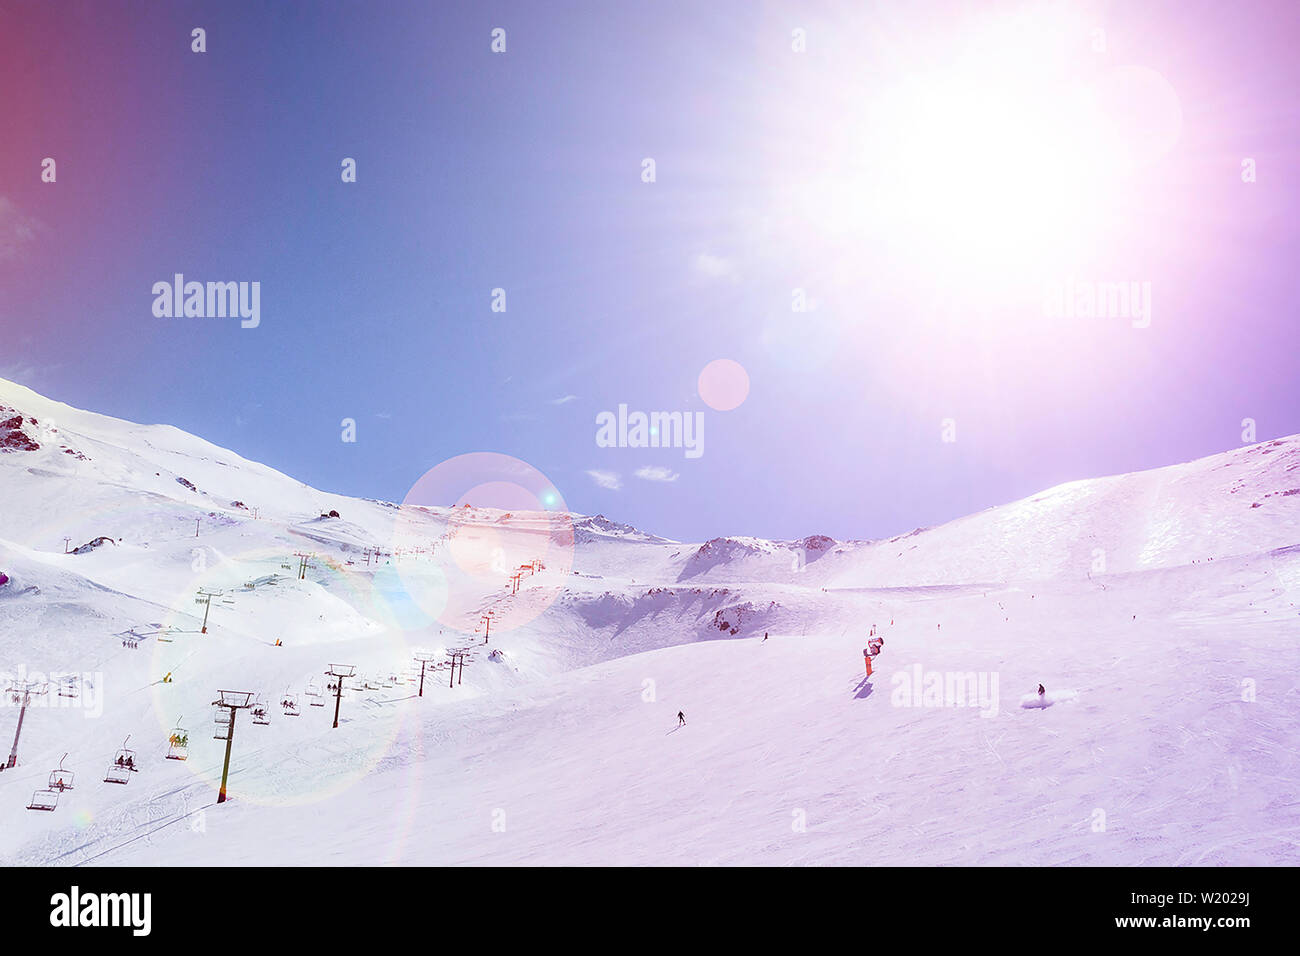 Snow Mountains in New Zealand atmosphere - Stock Image